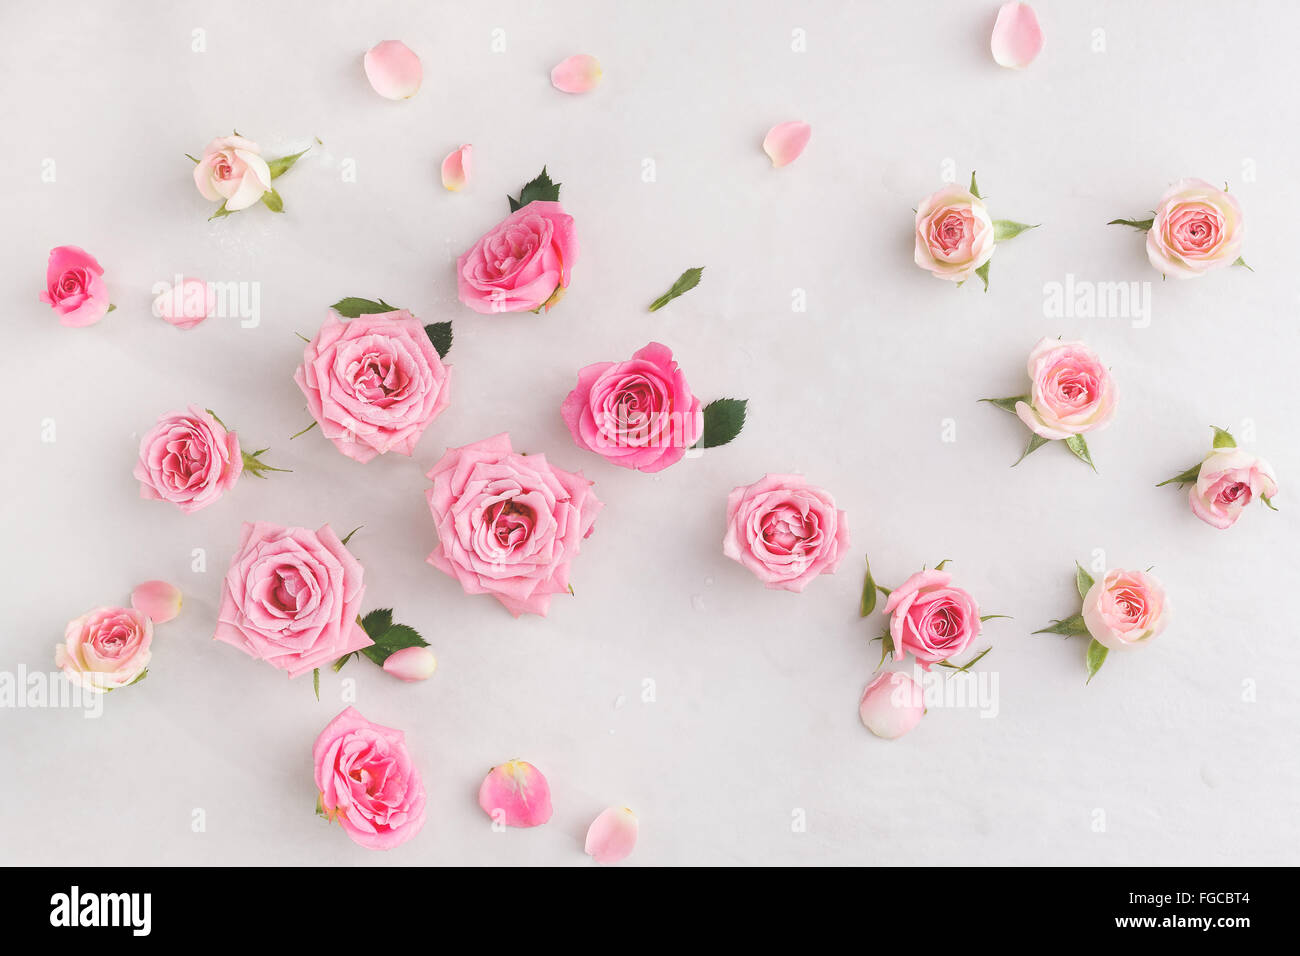 Various Soft Roses And Leaves Scattered On A Vintage Background Overhead View